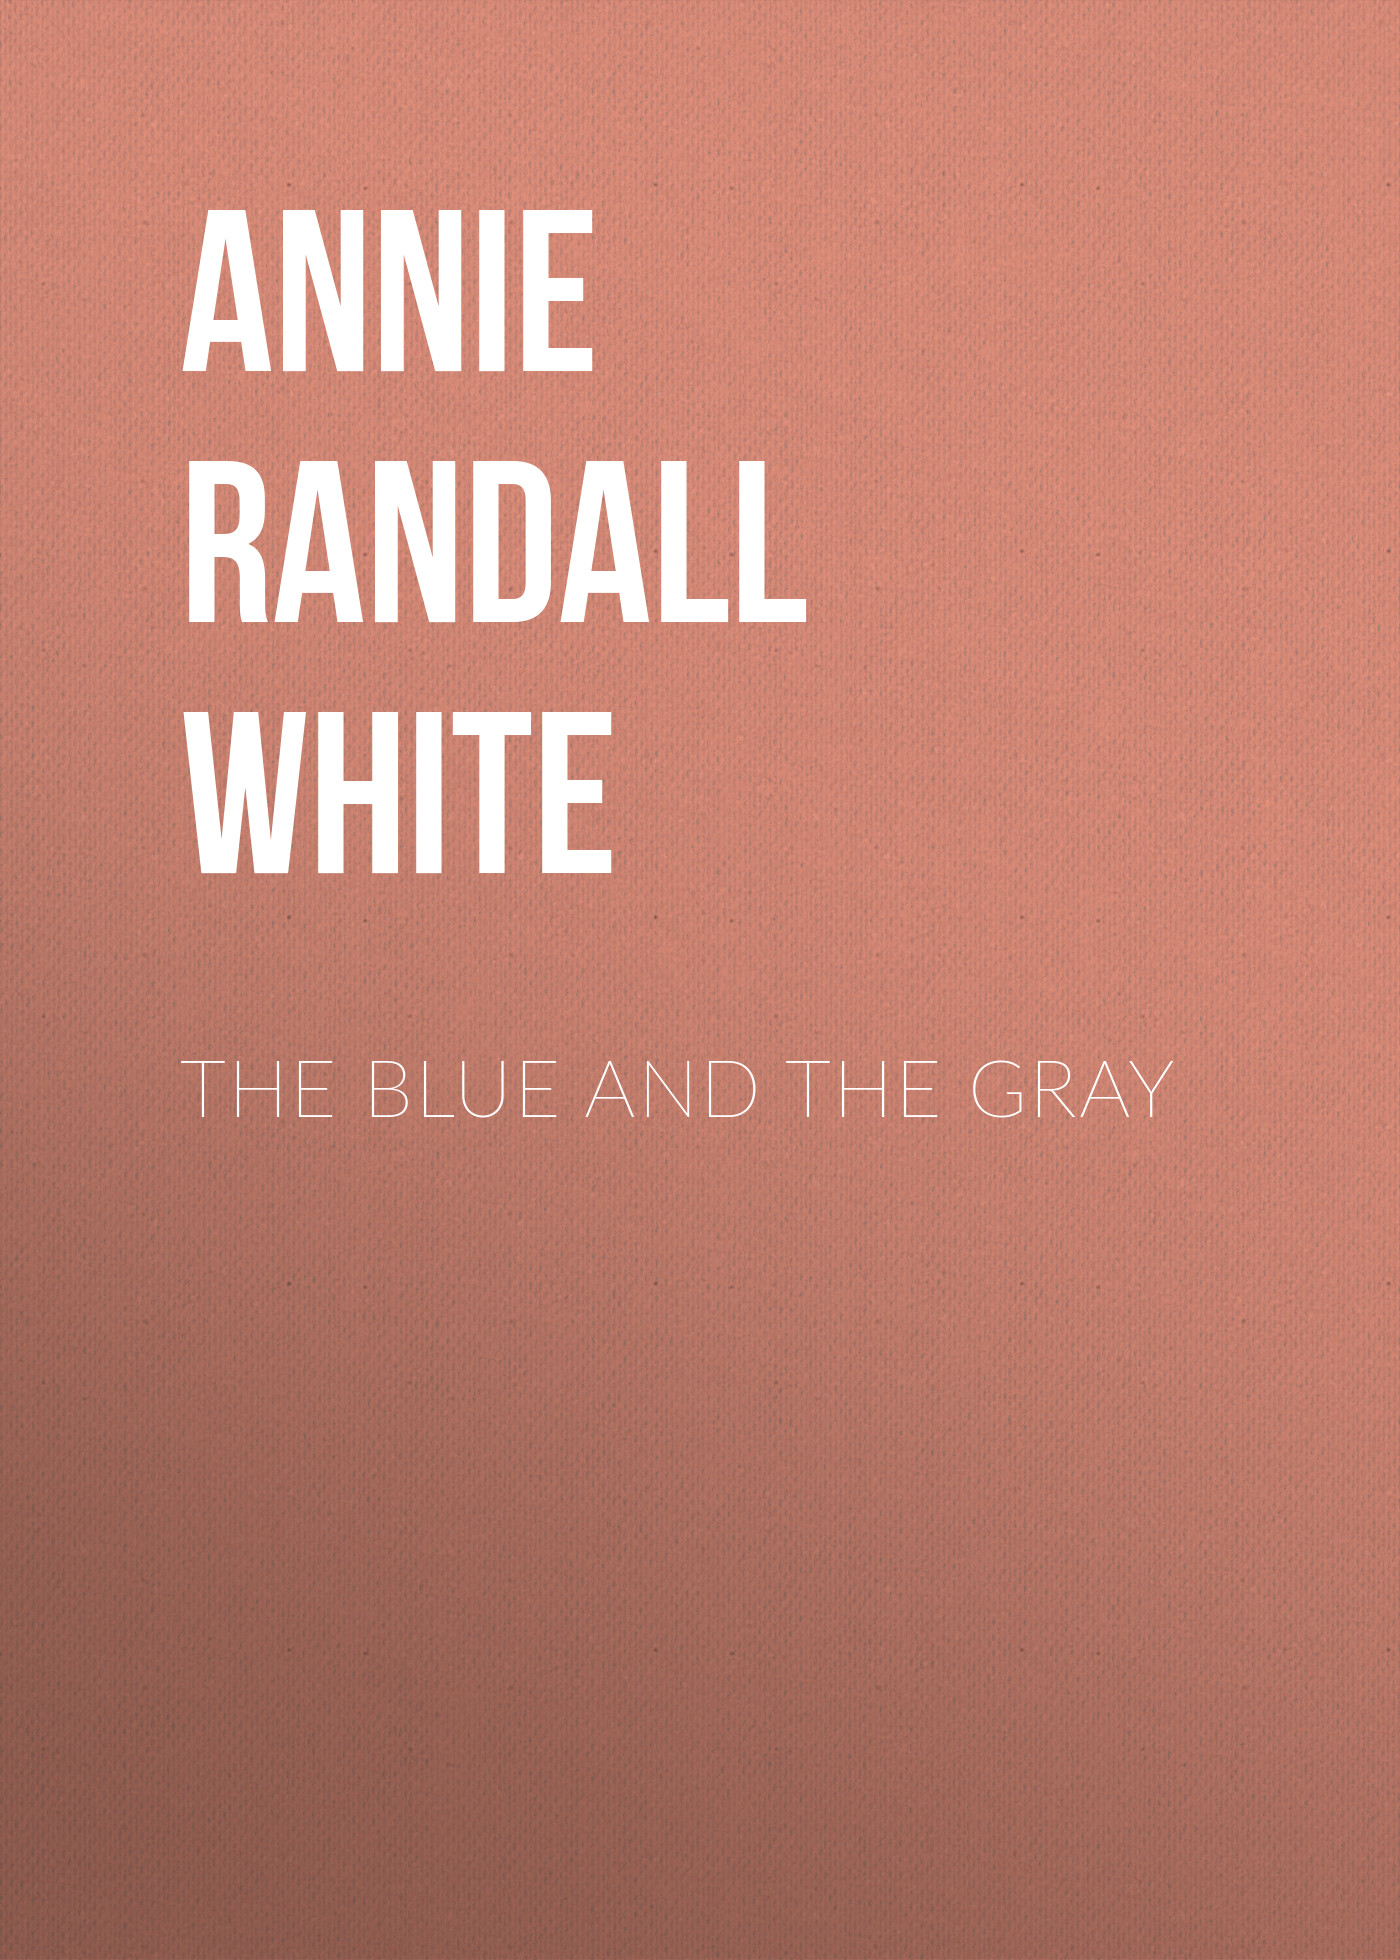 Annie Randall White The Blue and The Gray 18 5 dark gray and light gray and white and transparent holographic rear projection film